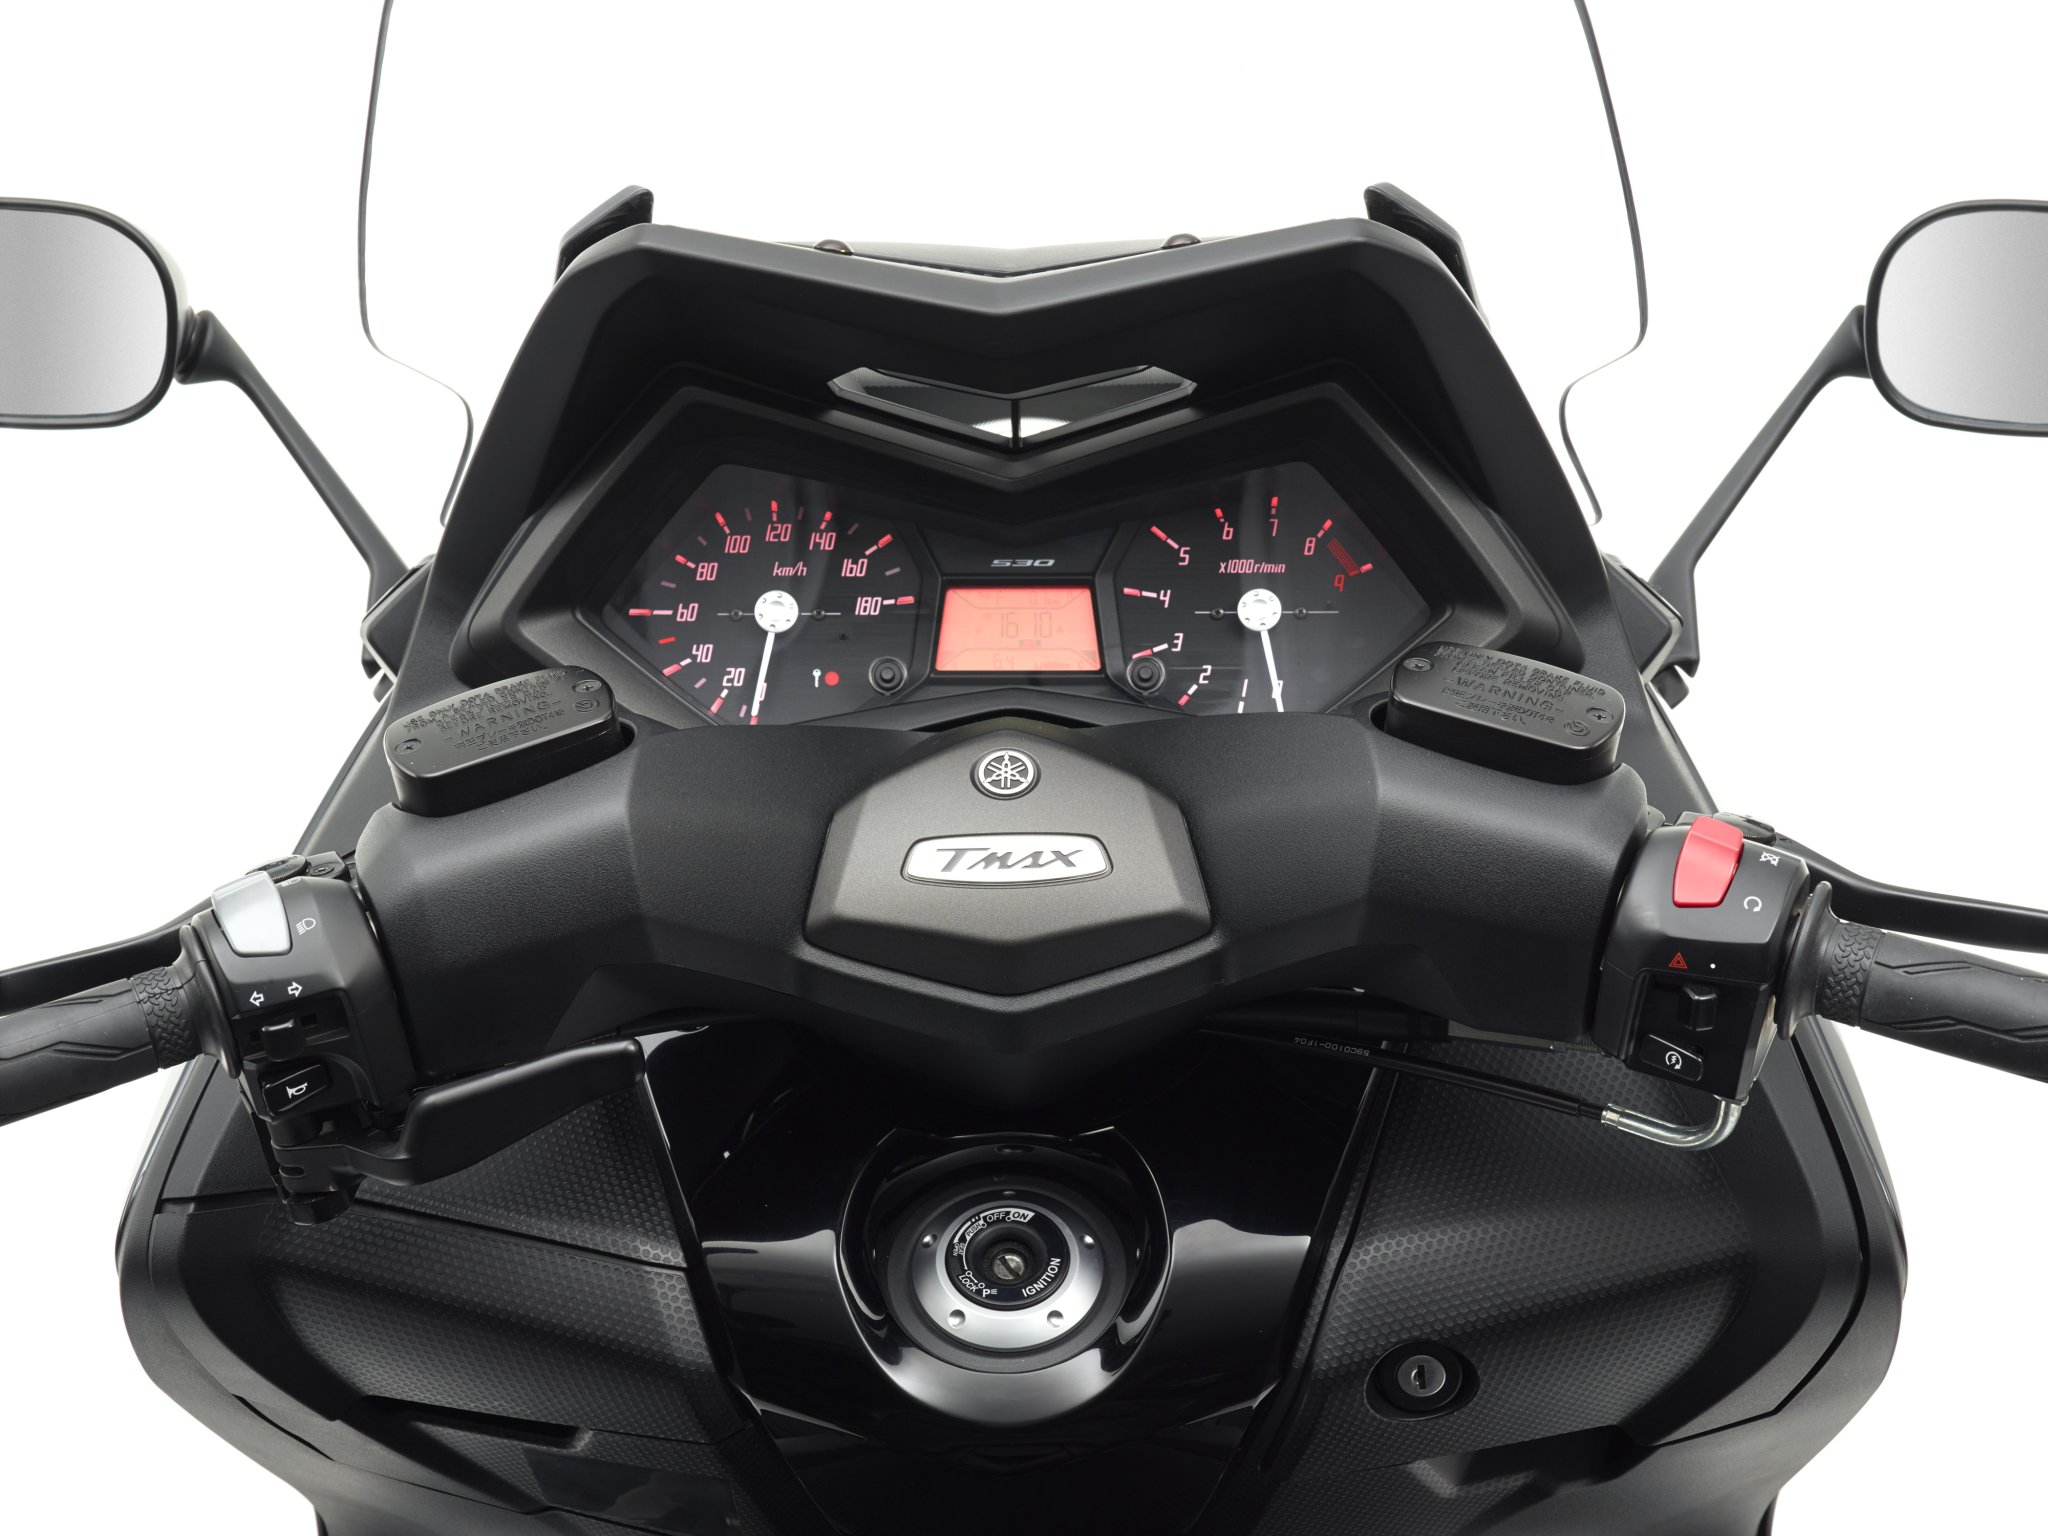 2003 yamaha t max 500 pics specs and information. Black Bedroom Furniture Sets. Home Design Ideas